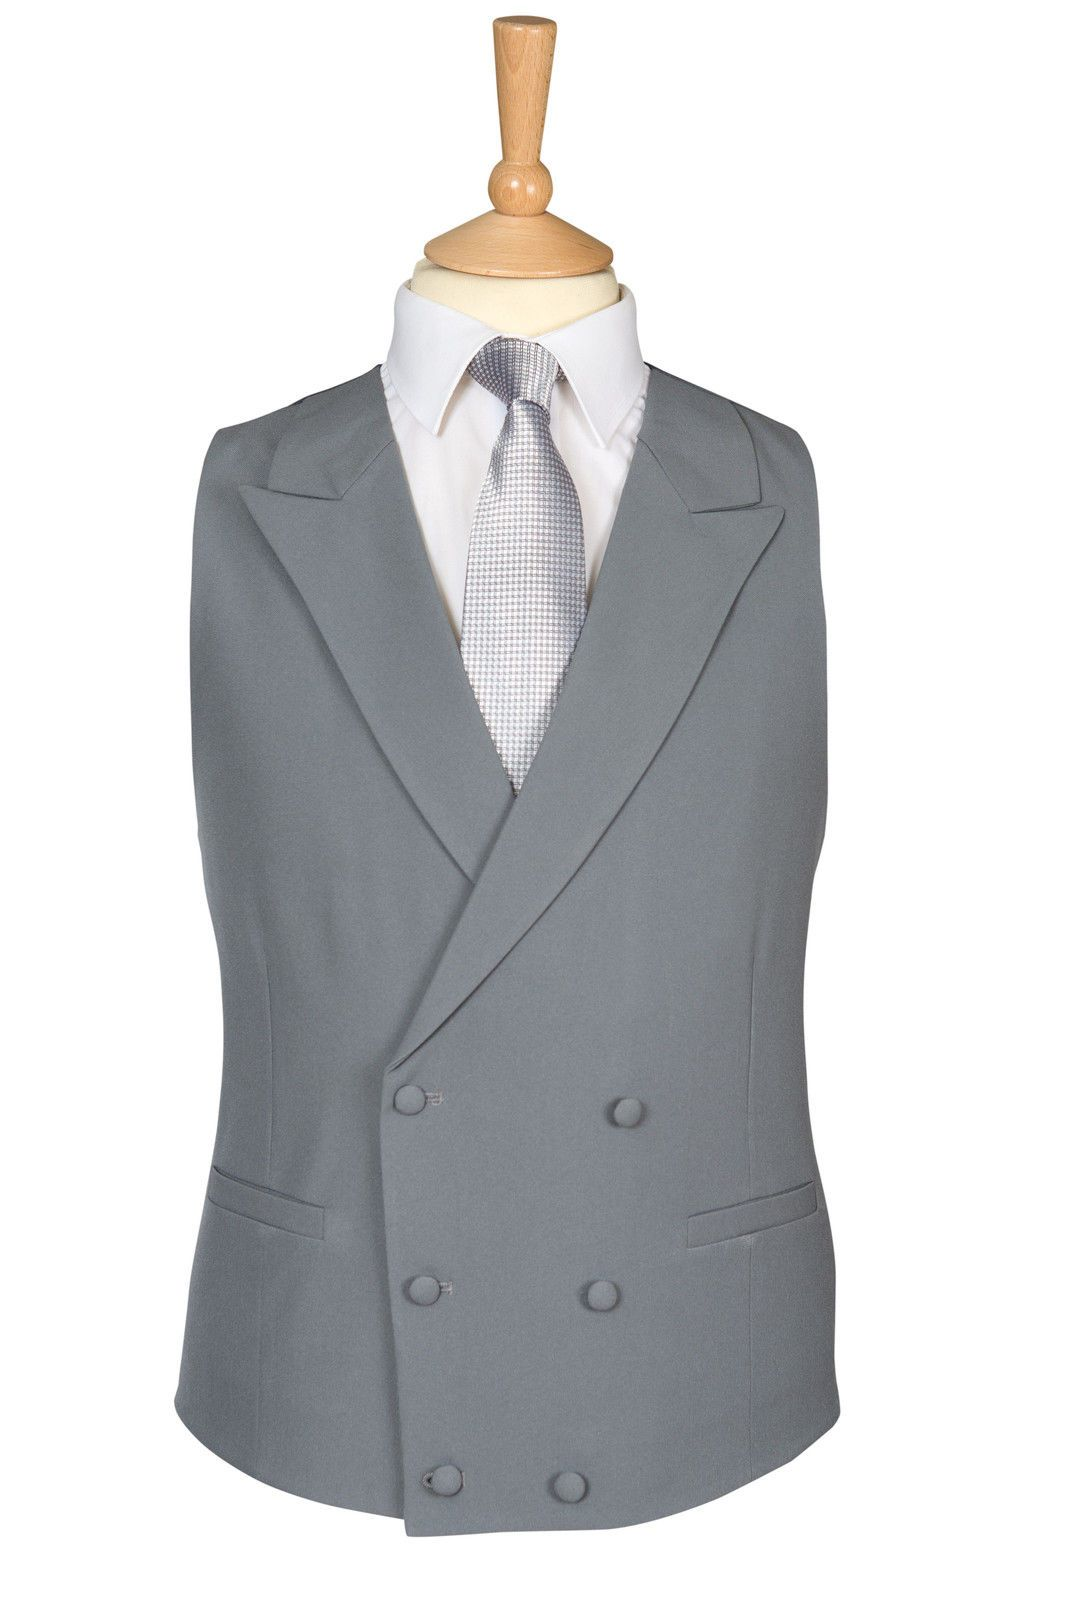 Wedding dress suit  Mens new royal ascot dove grey double breasted wedding dress suit